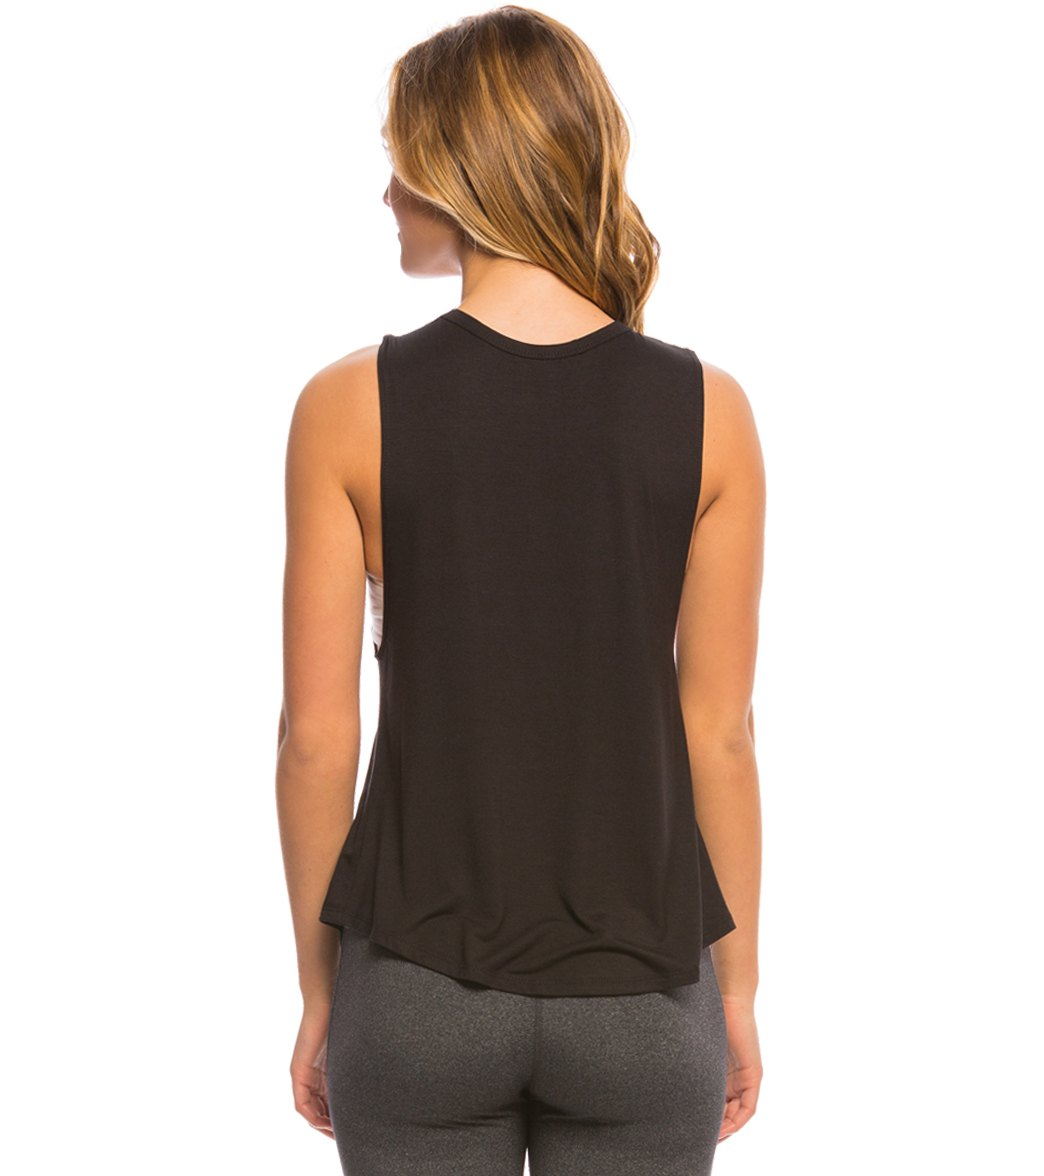 0c07109df0f9 Puppies Make Me Happy Puppies & Yoga Workout Tank Top at SwimOutlet.com